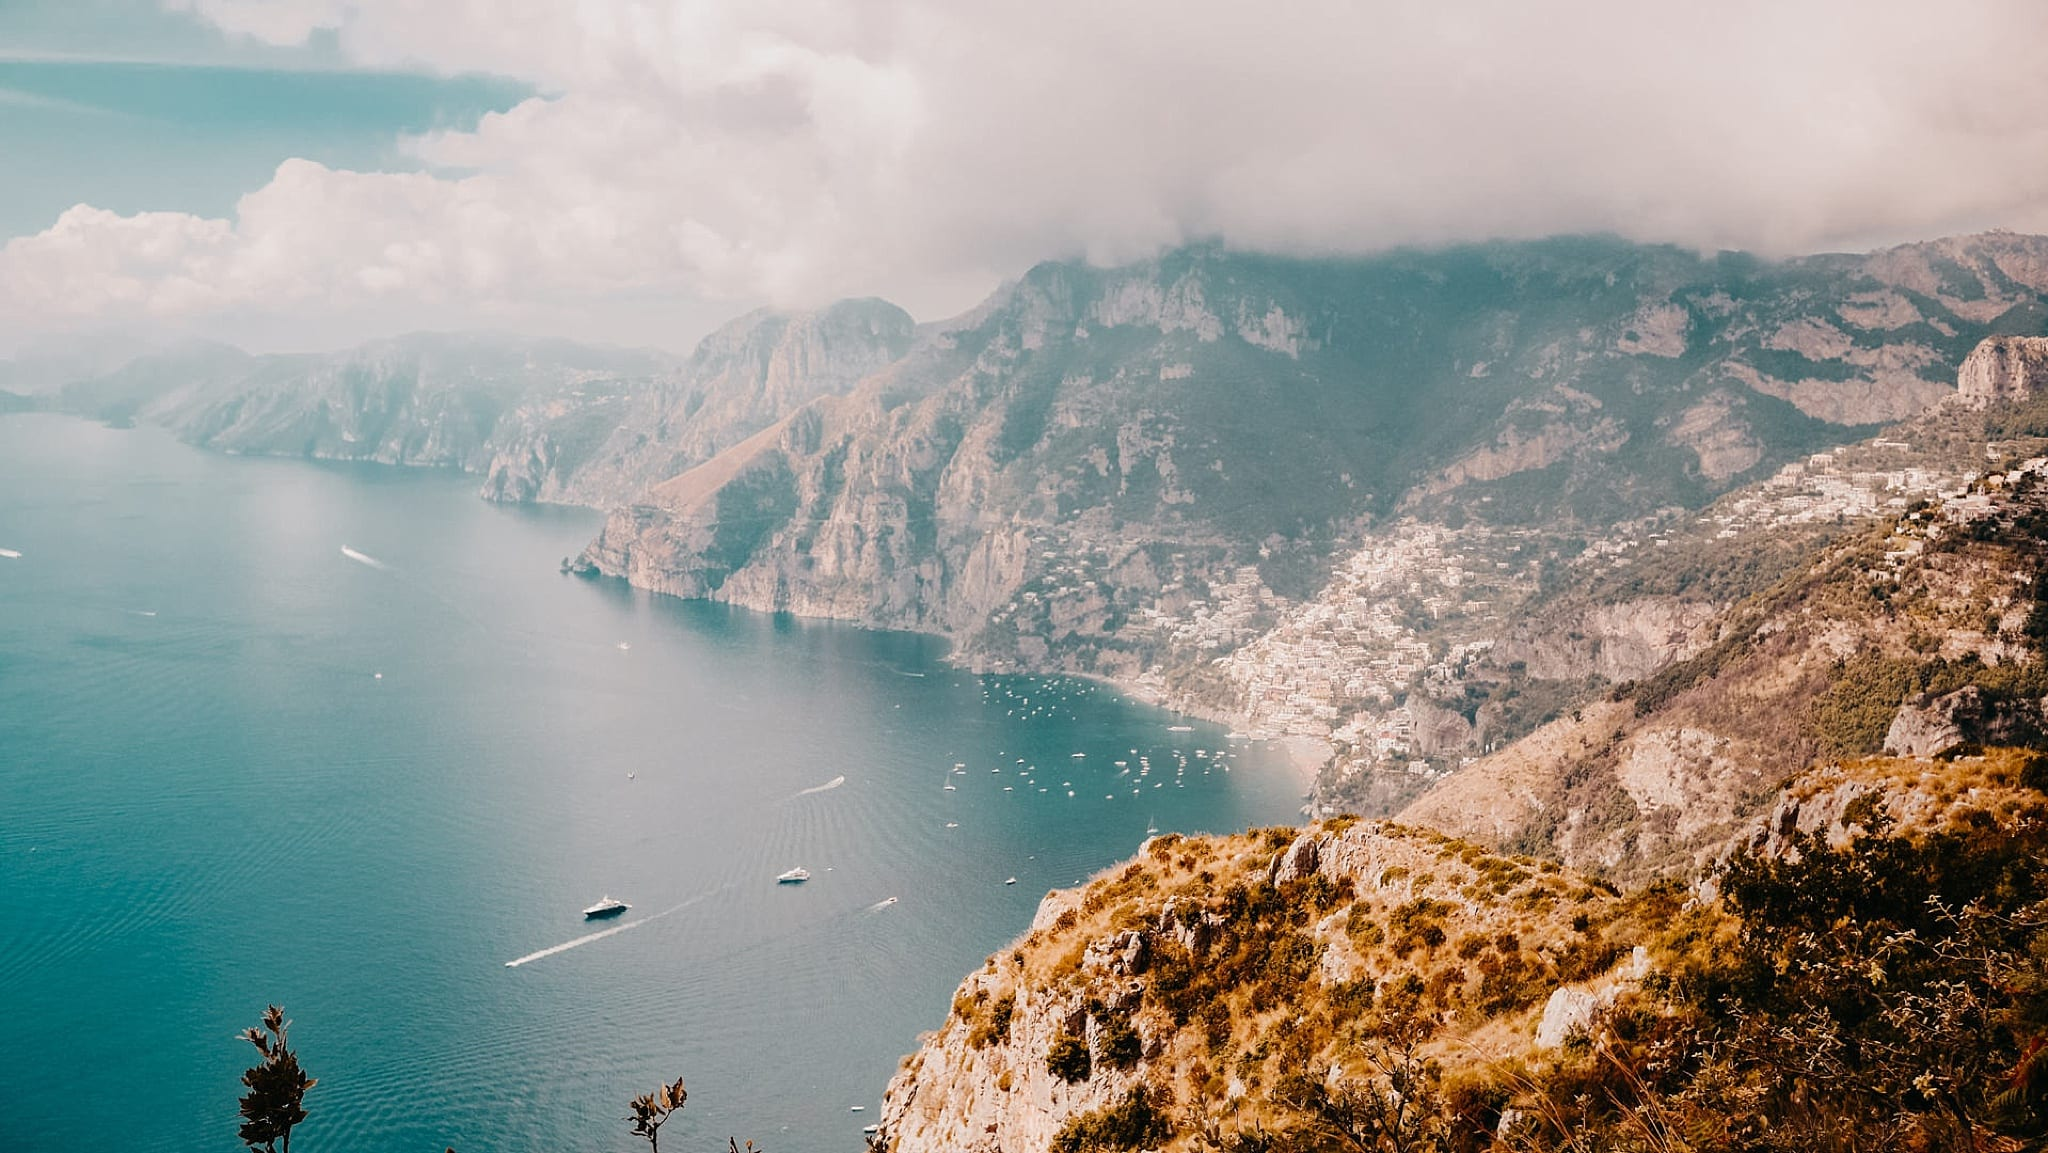 Amalfi Coast Destination Wedding Adventurous Elopement Travel Guide - Ravello Positano Villa Cimbrone Wedding Photographer - ME+HIM Photography